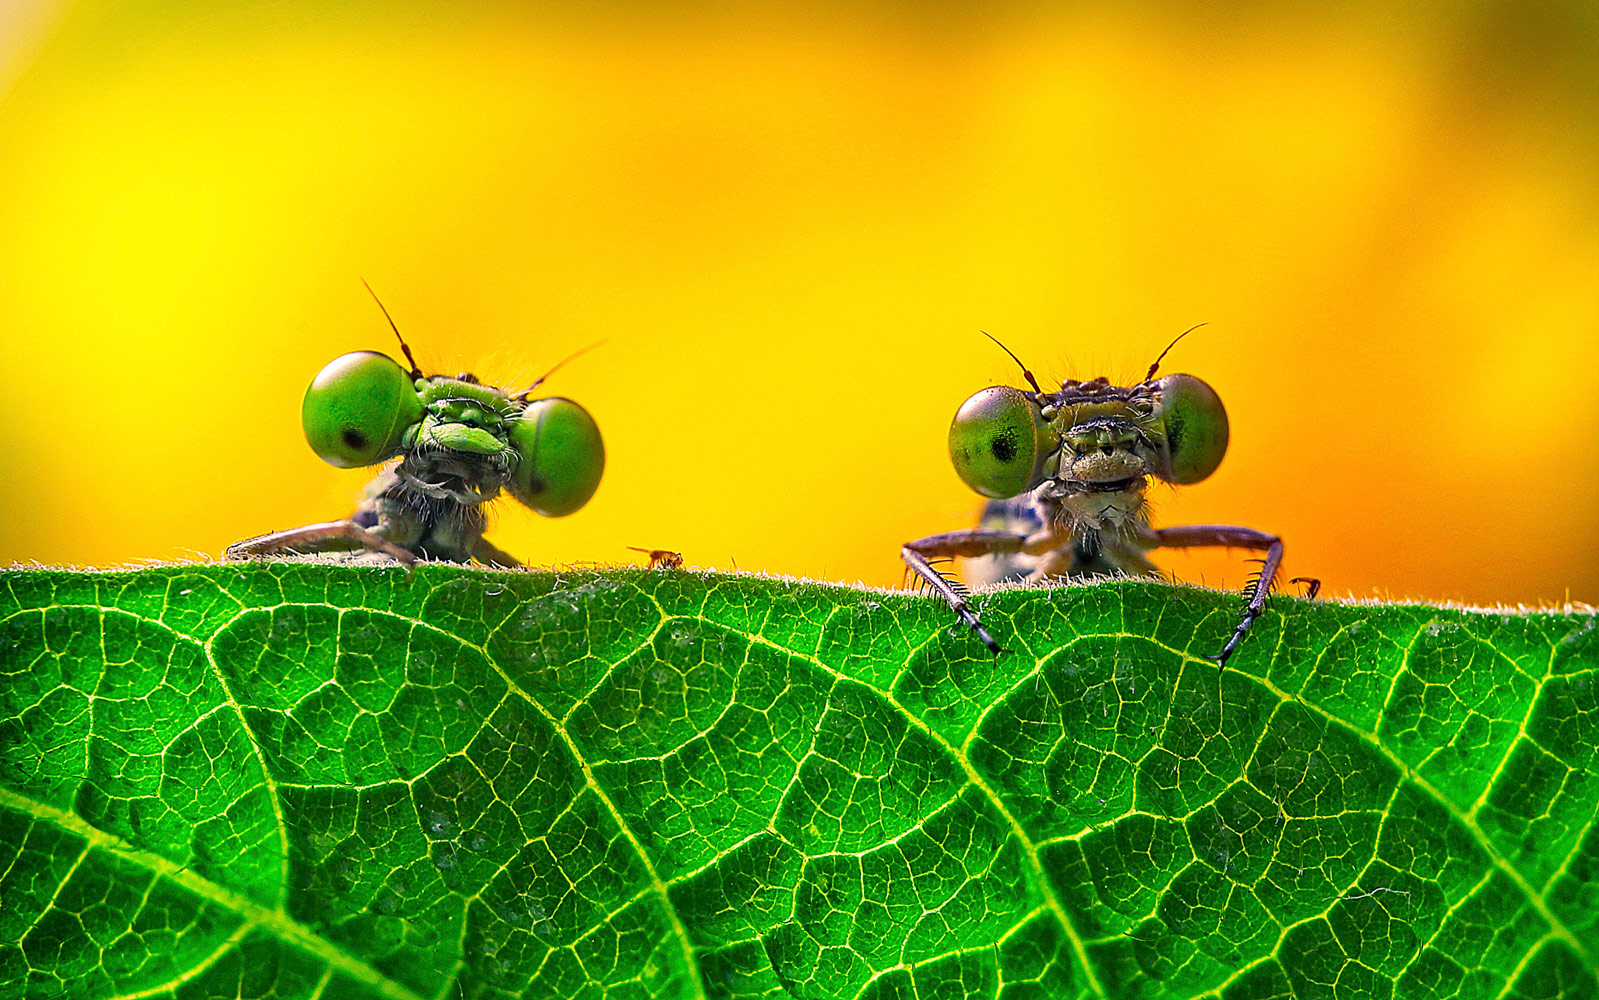 Two big eyes, © Miao Yong, The Royal Society of Biology annual photography competition